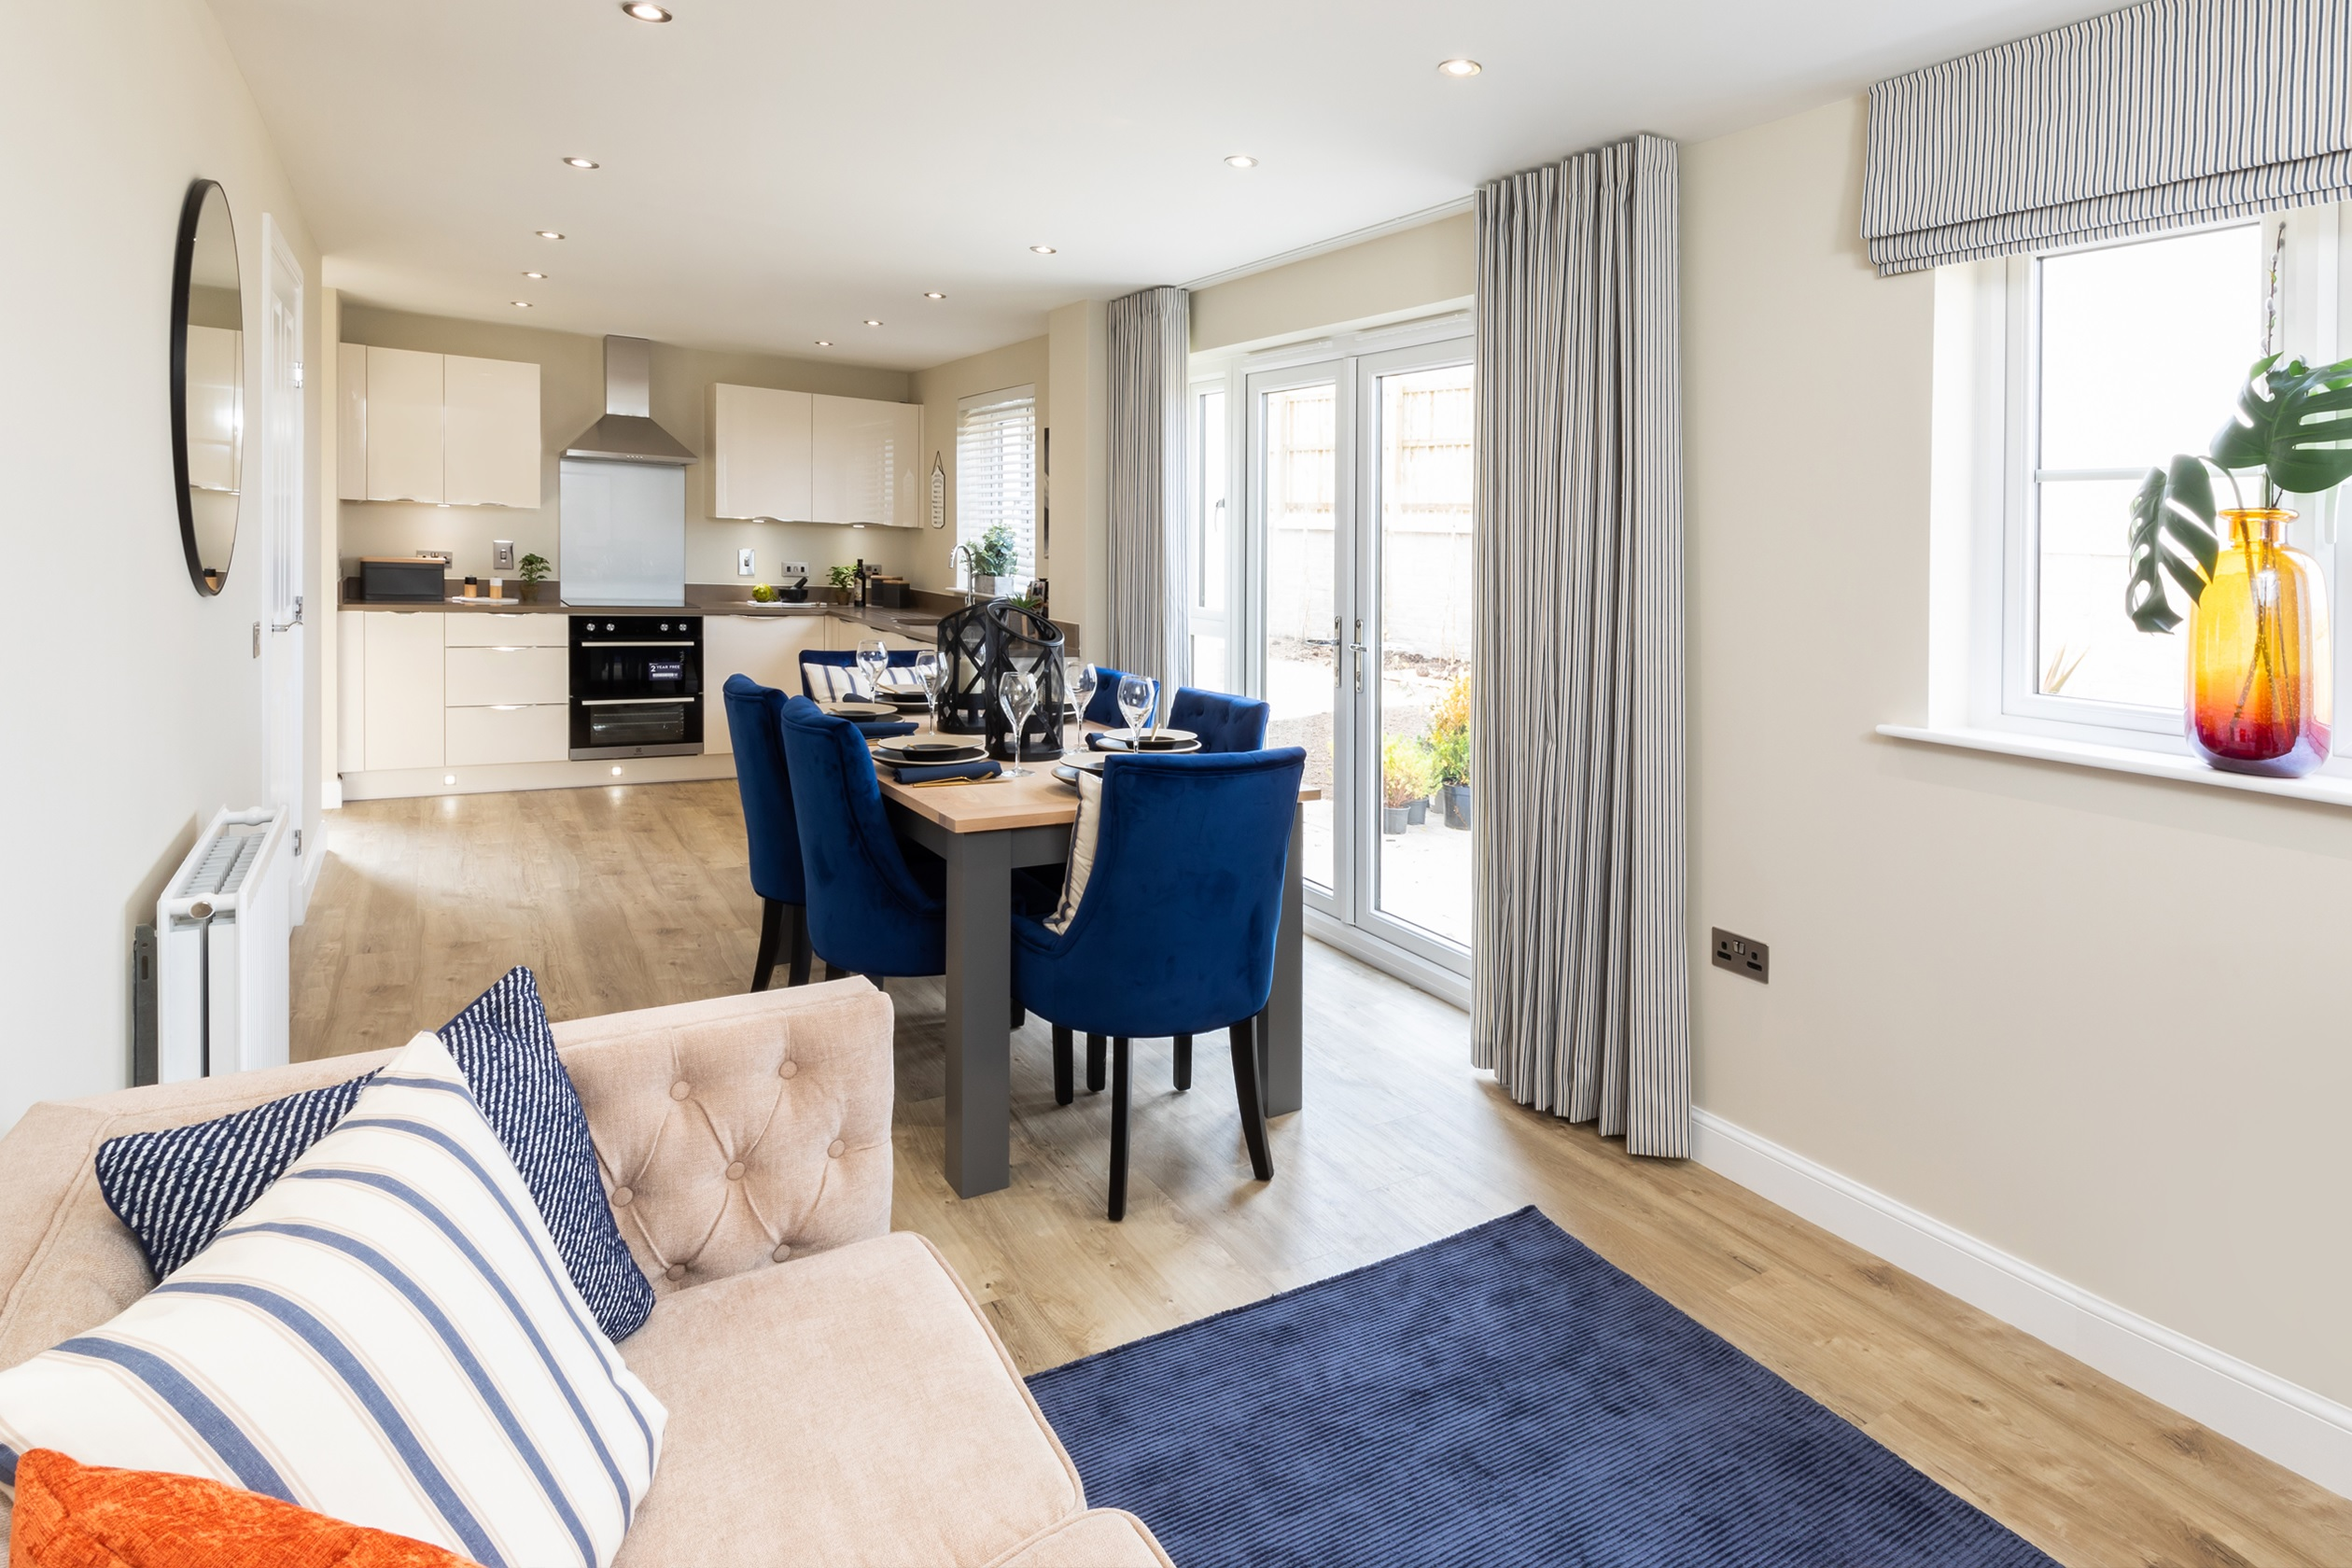 Balmoral Show Home at Hopecroft open plan kitchen, dining, family room